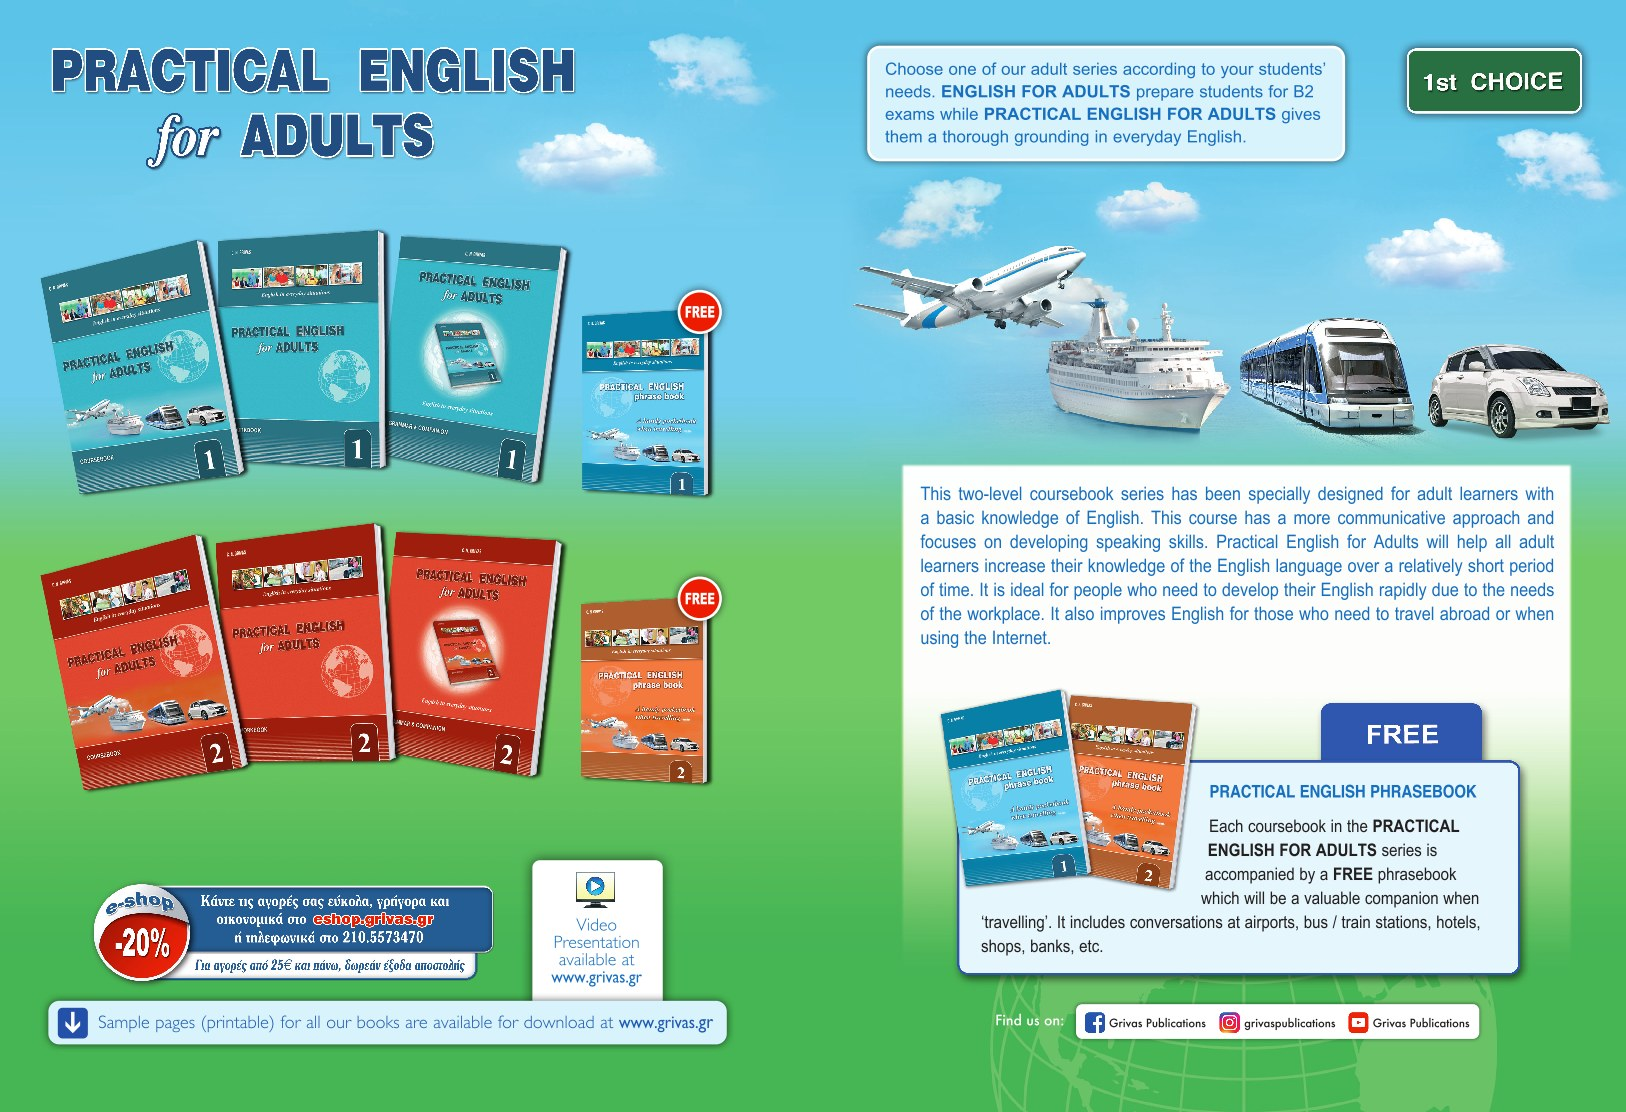 Practical English for Adults